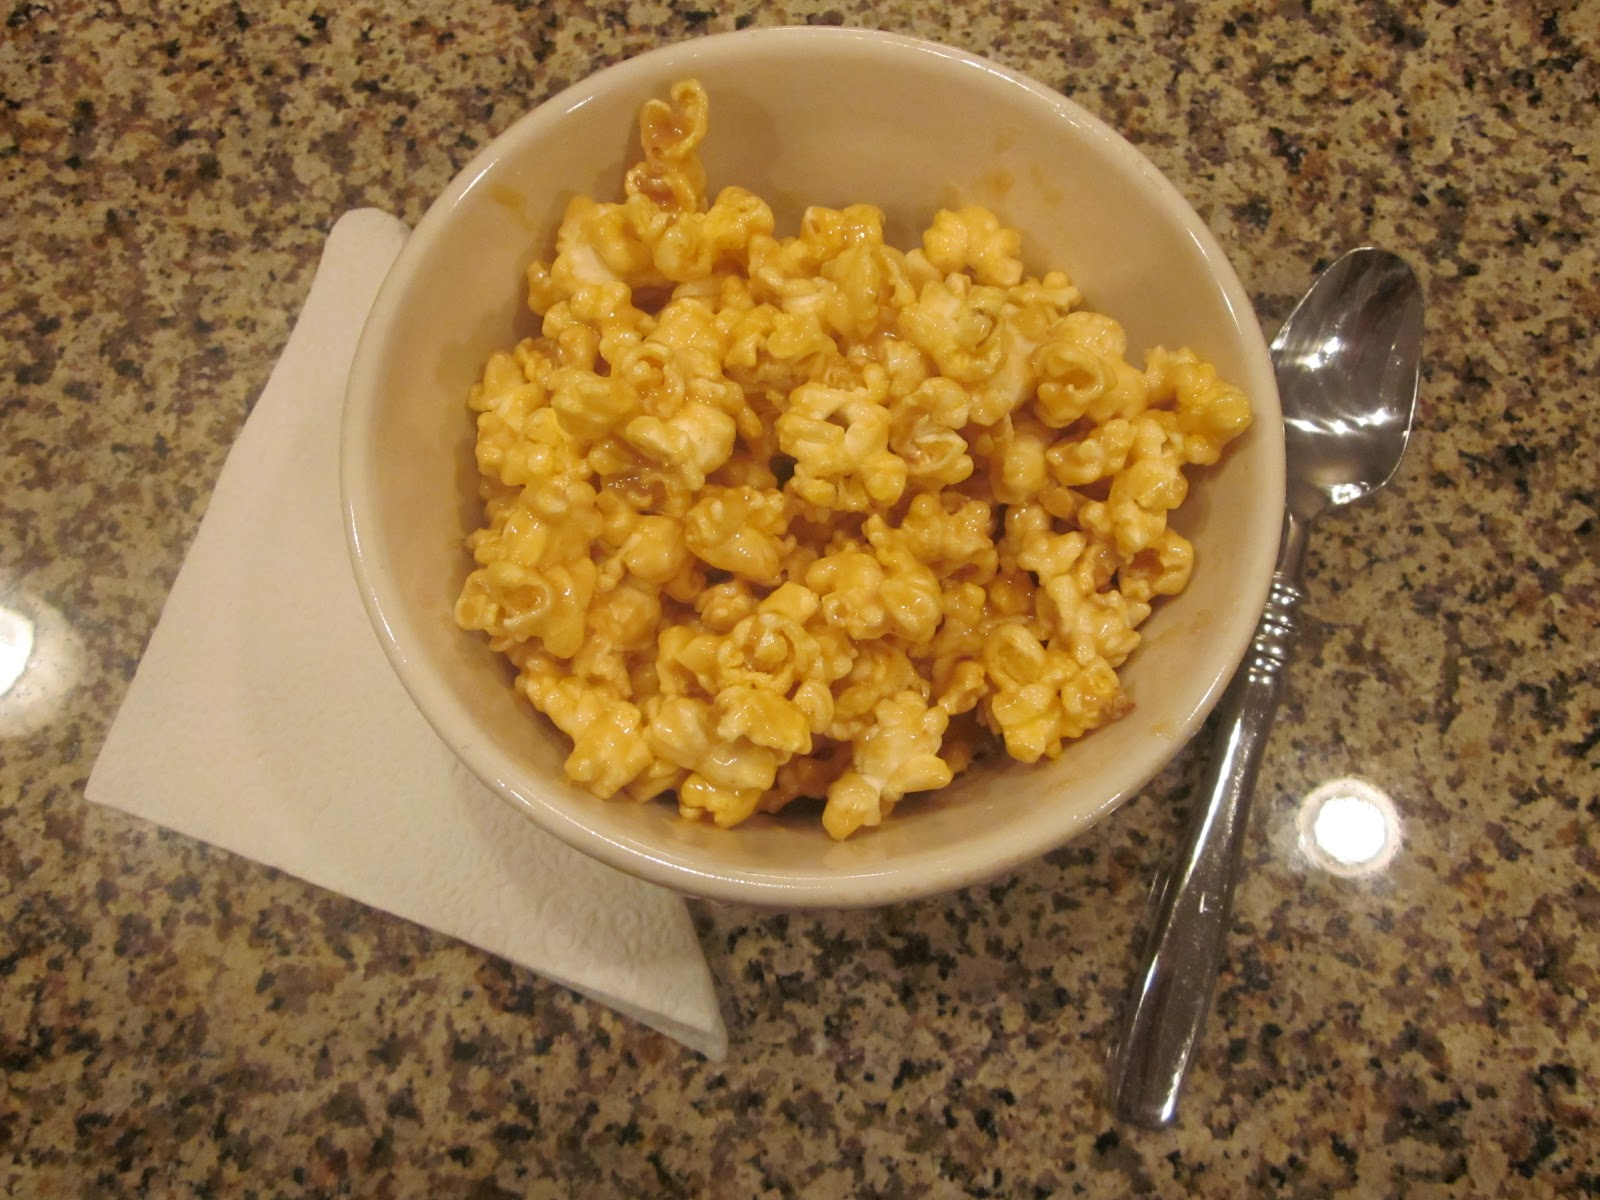 Home Made Is Easy: Caramel Popcorn